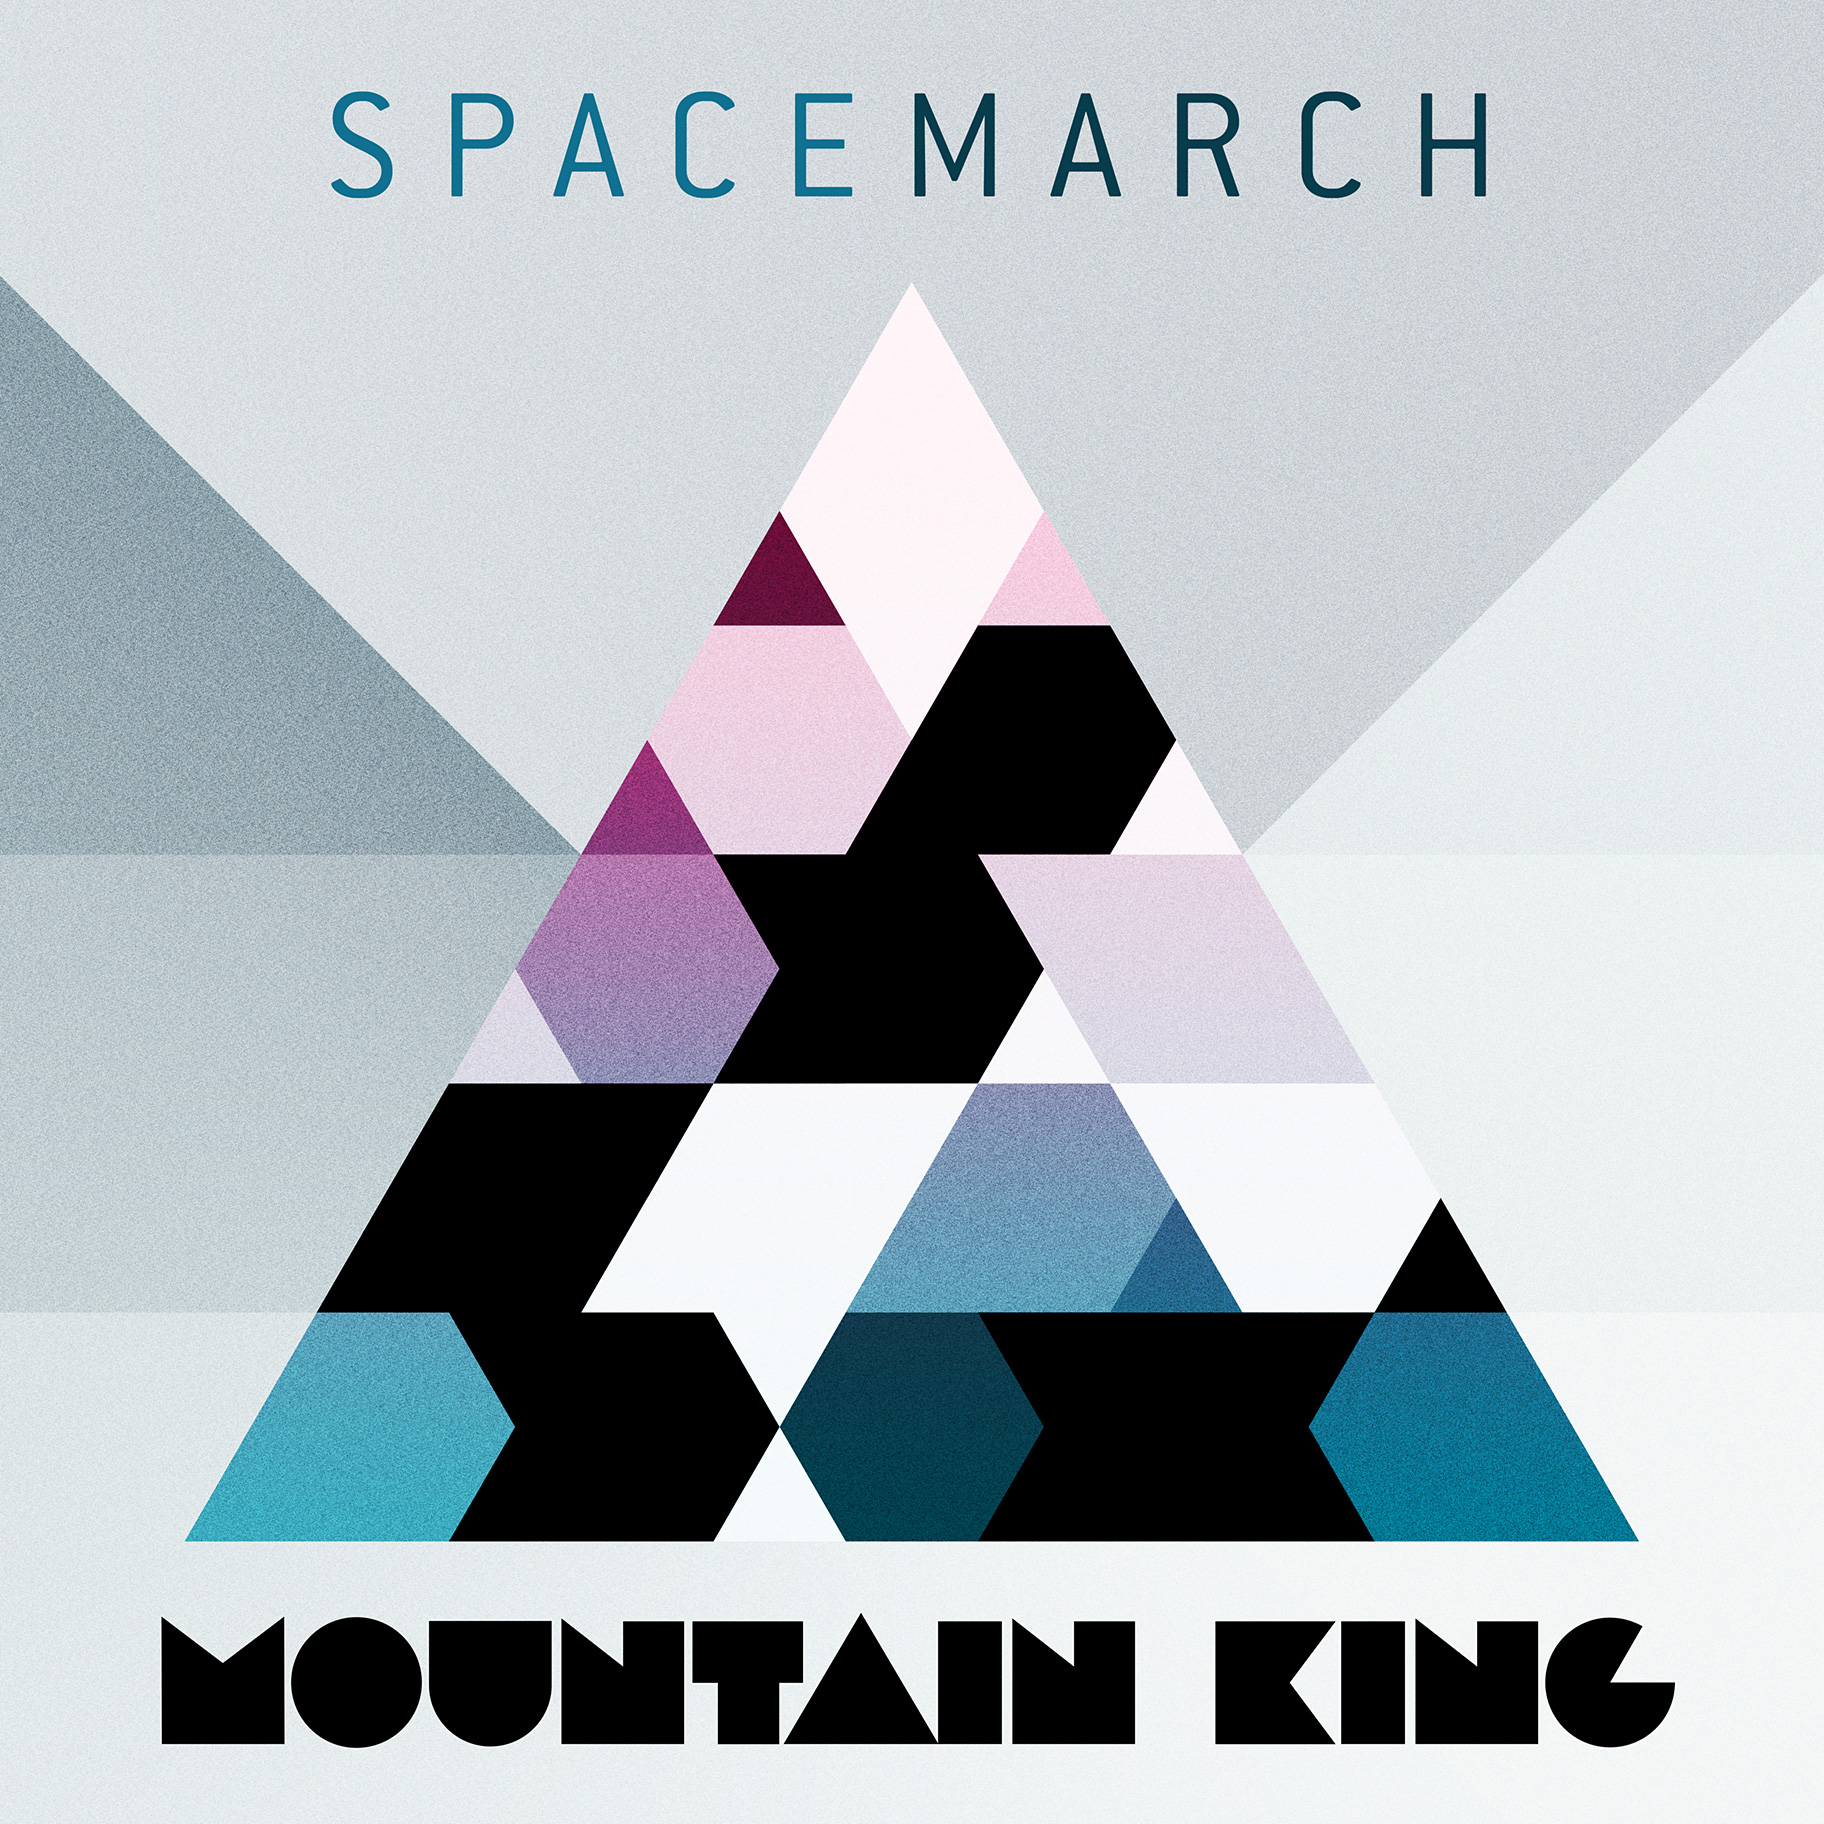 PF_SpaceMarch_MountainKing_1824px